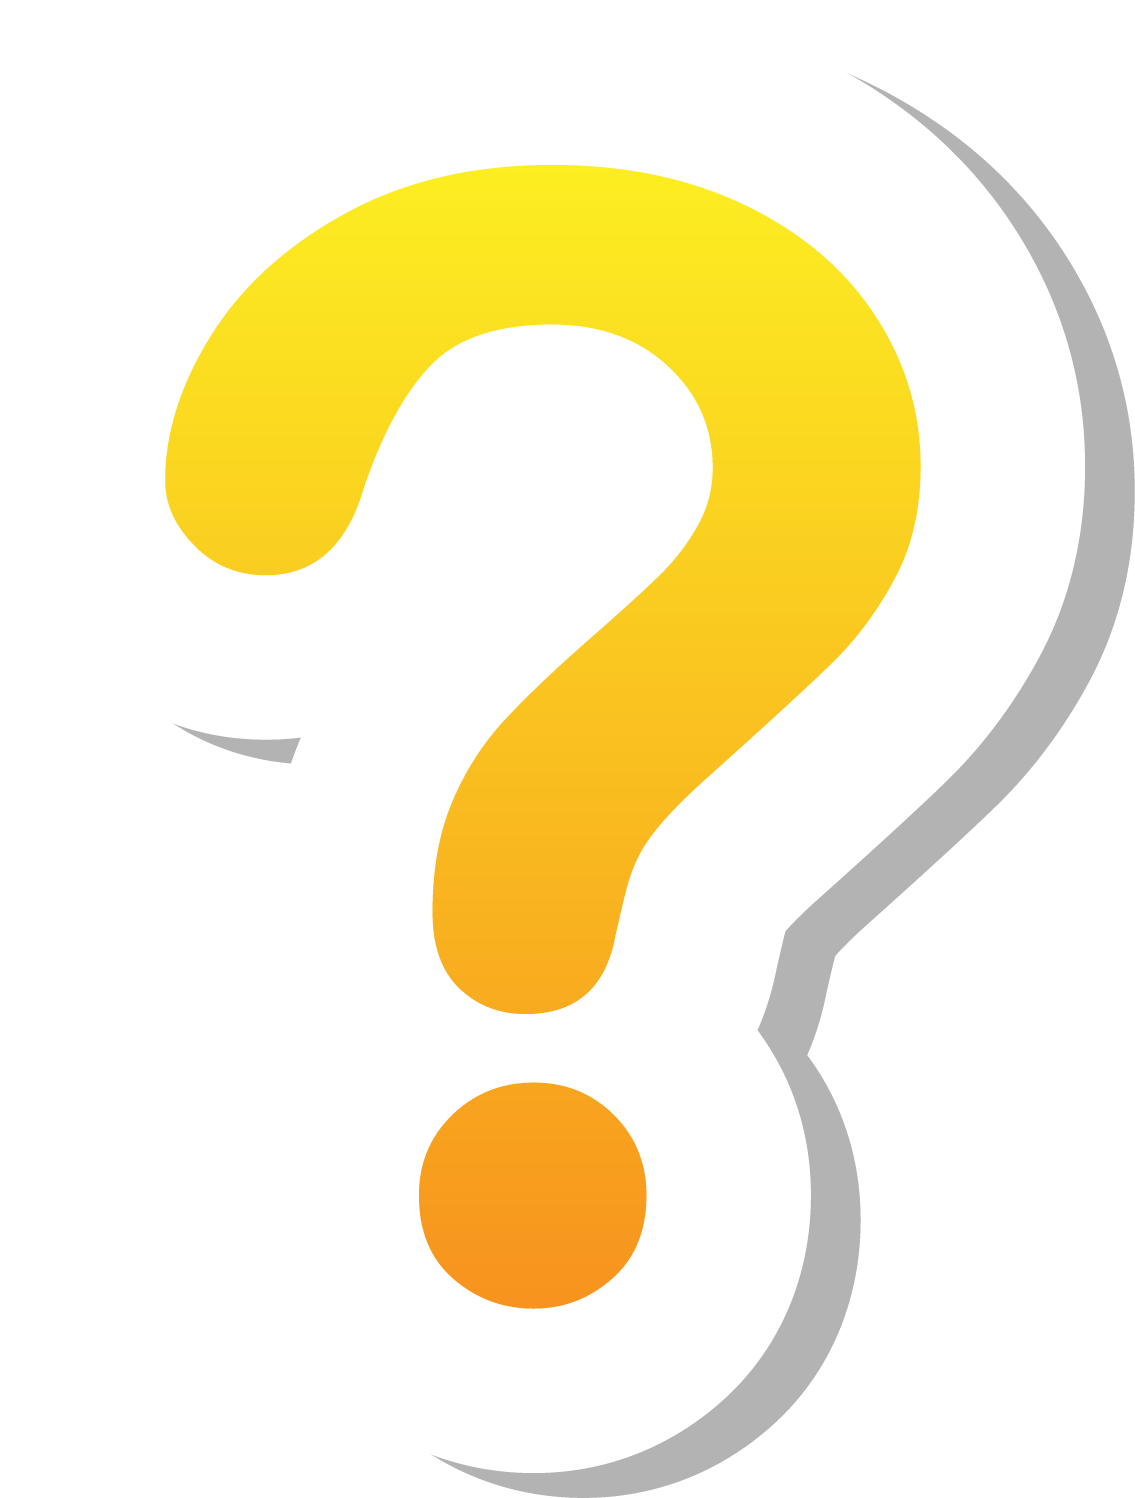 Text Symbol Question Encapsulated Yellow Mark Postscript PNG Image